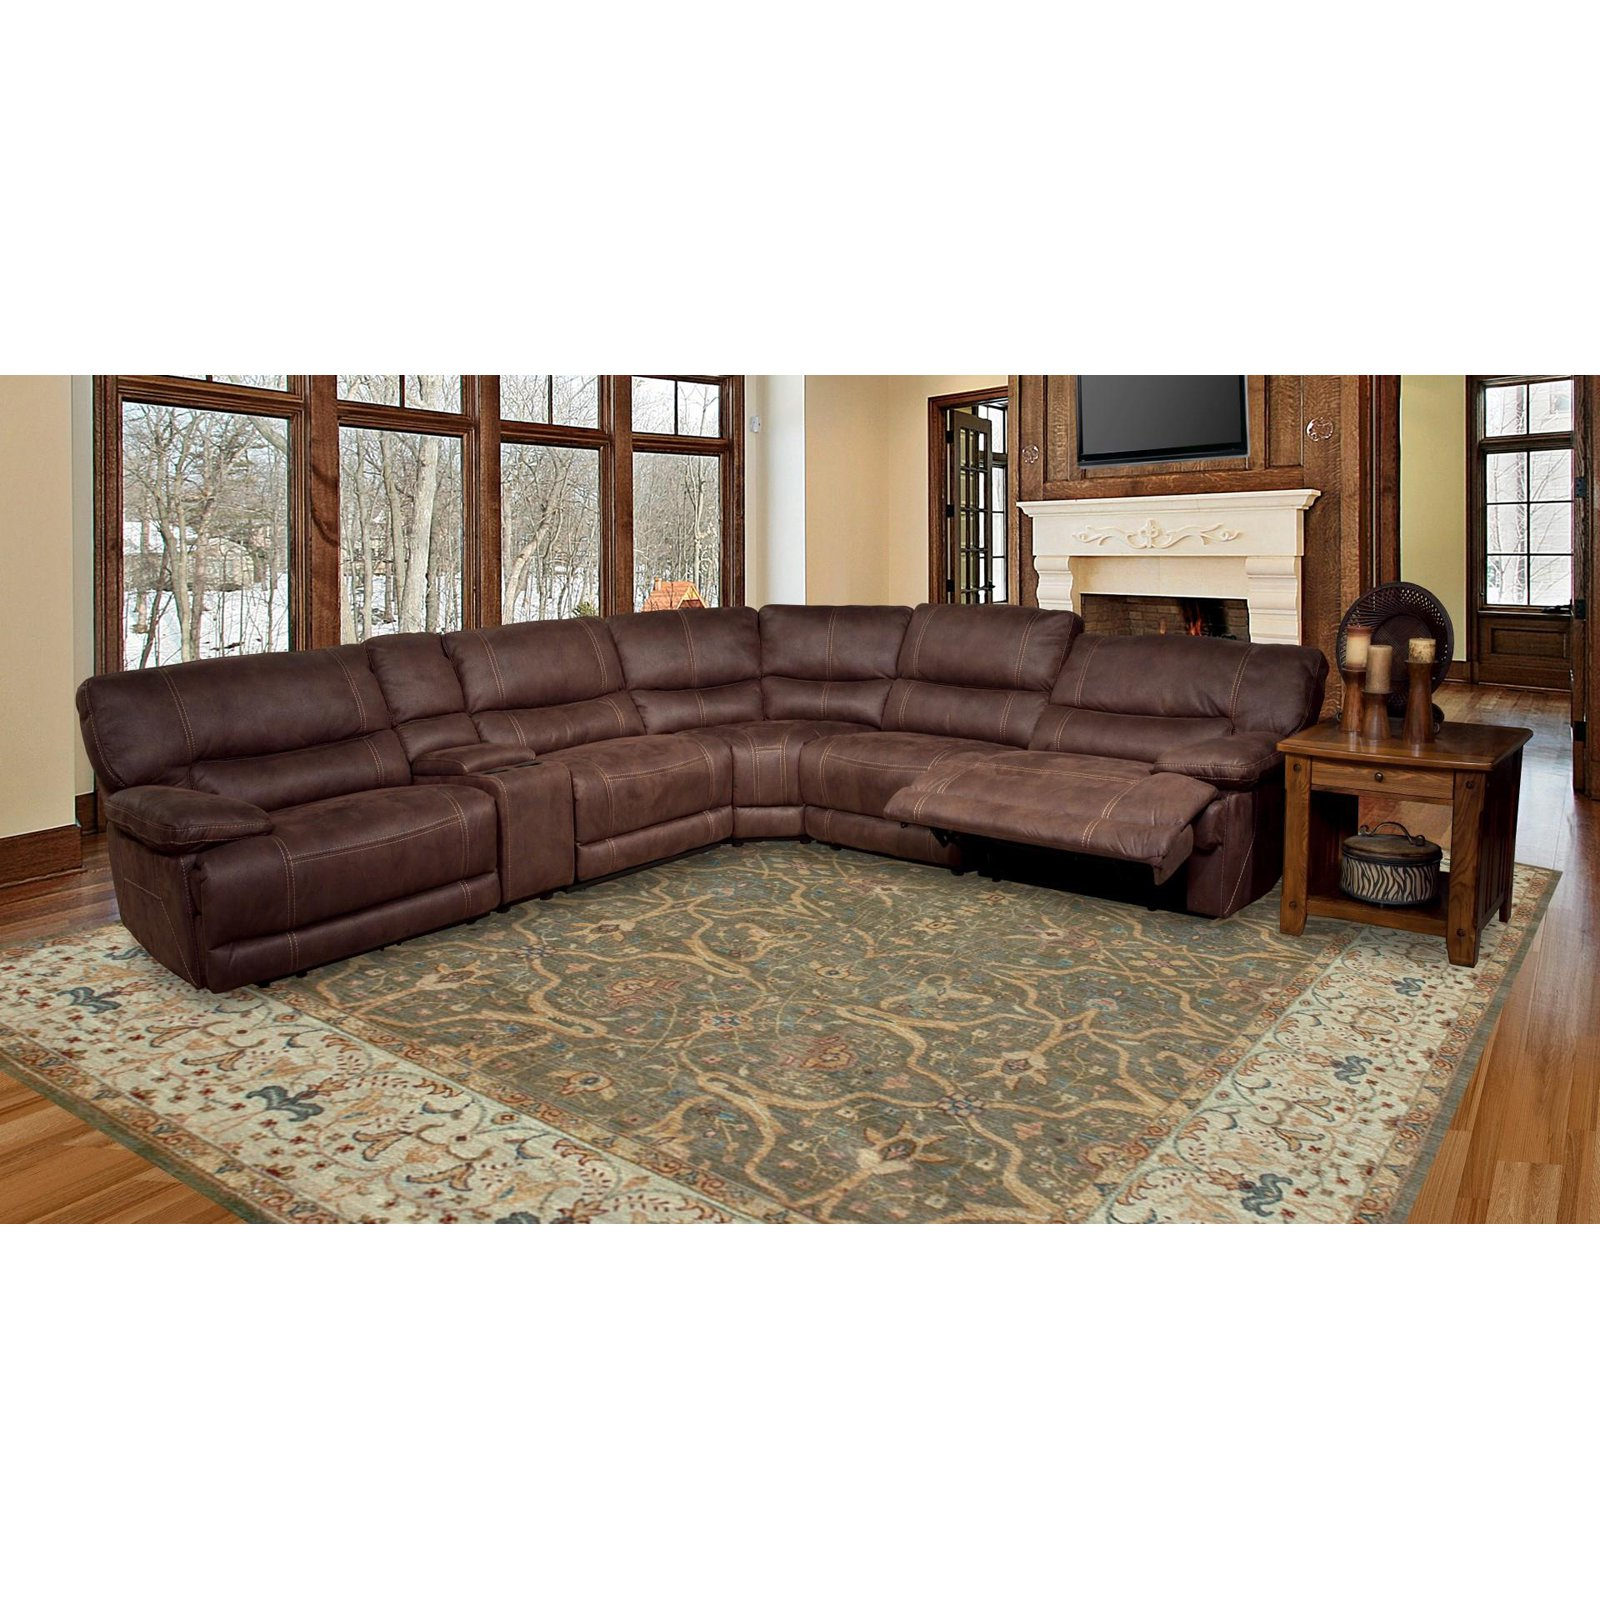 Parker House Pegasus 6 Piece Modular Sectional with 2 Power Recliners